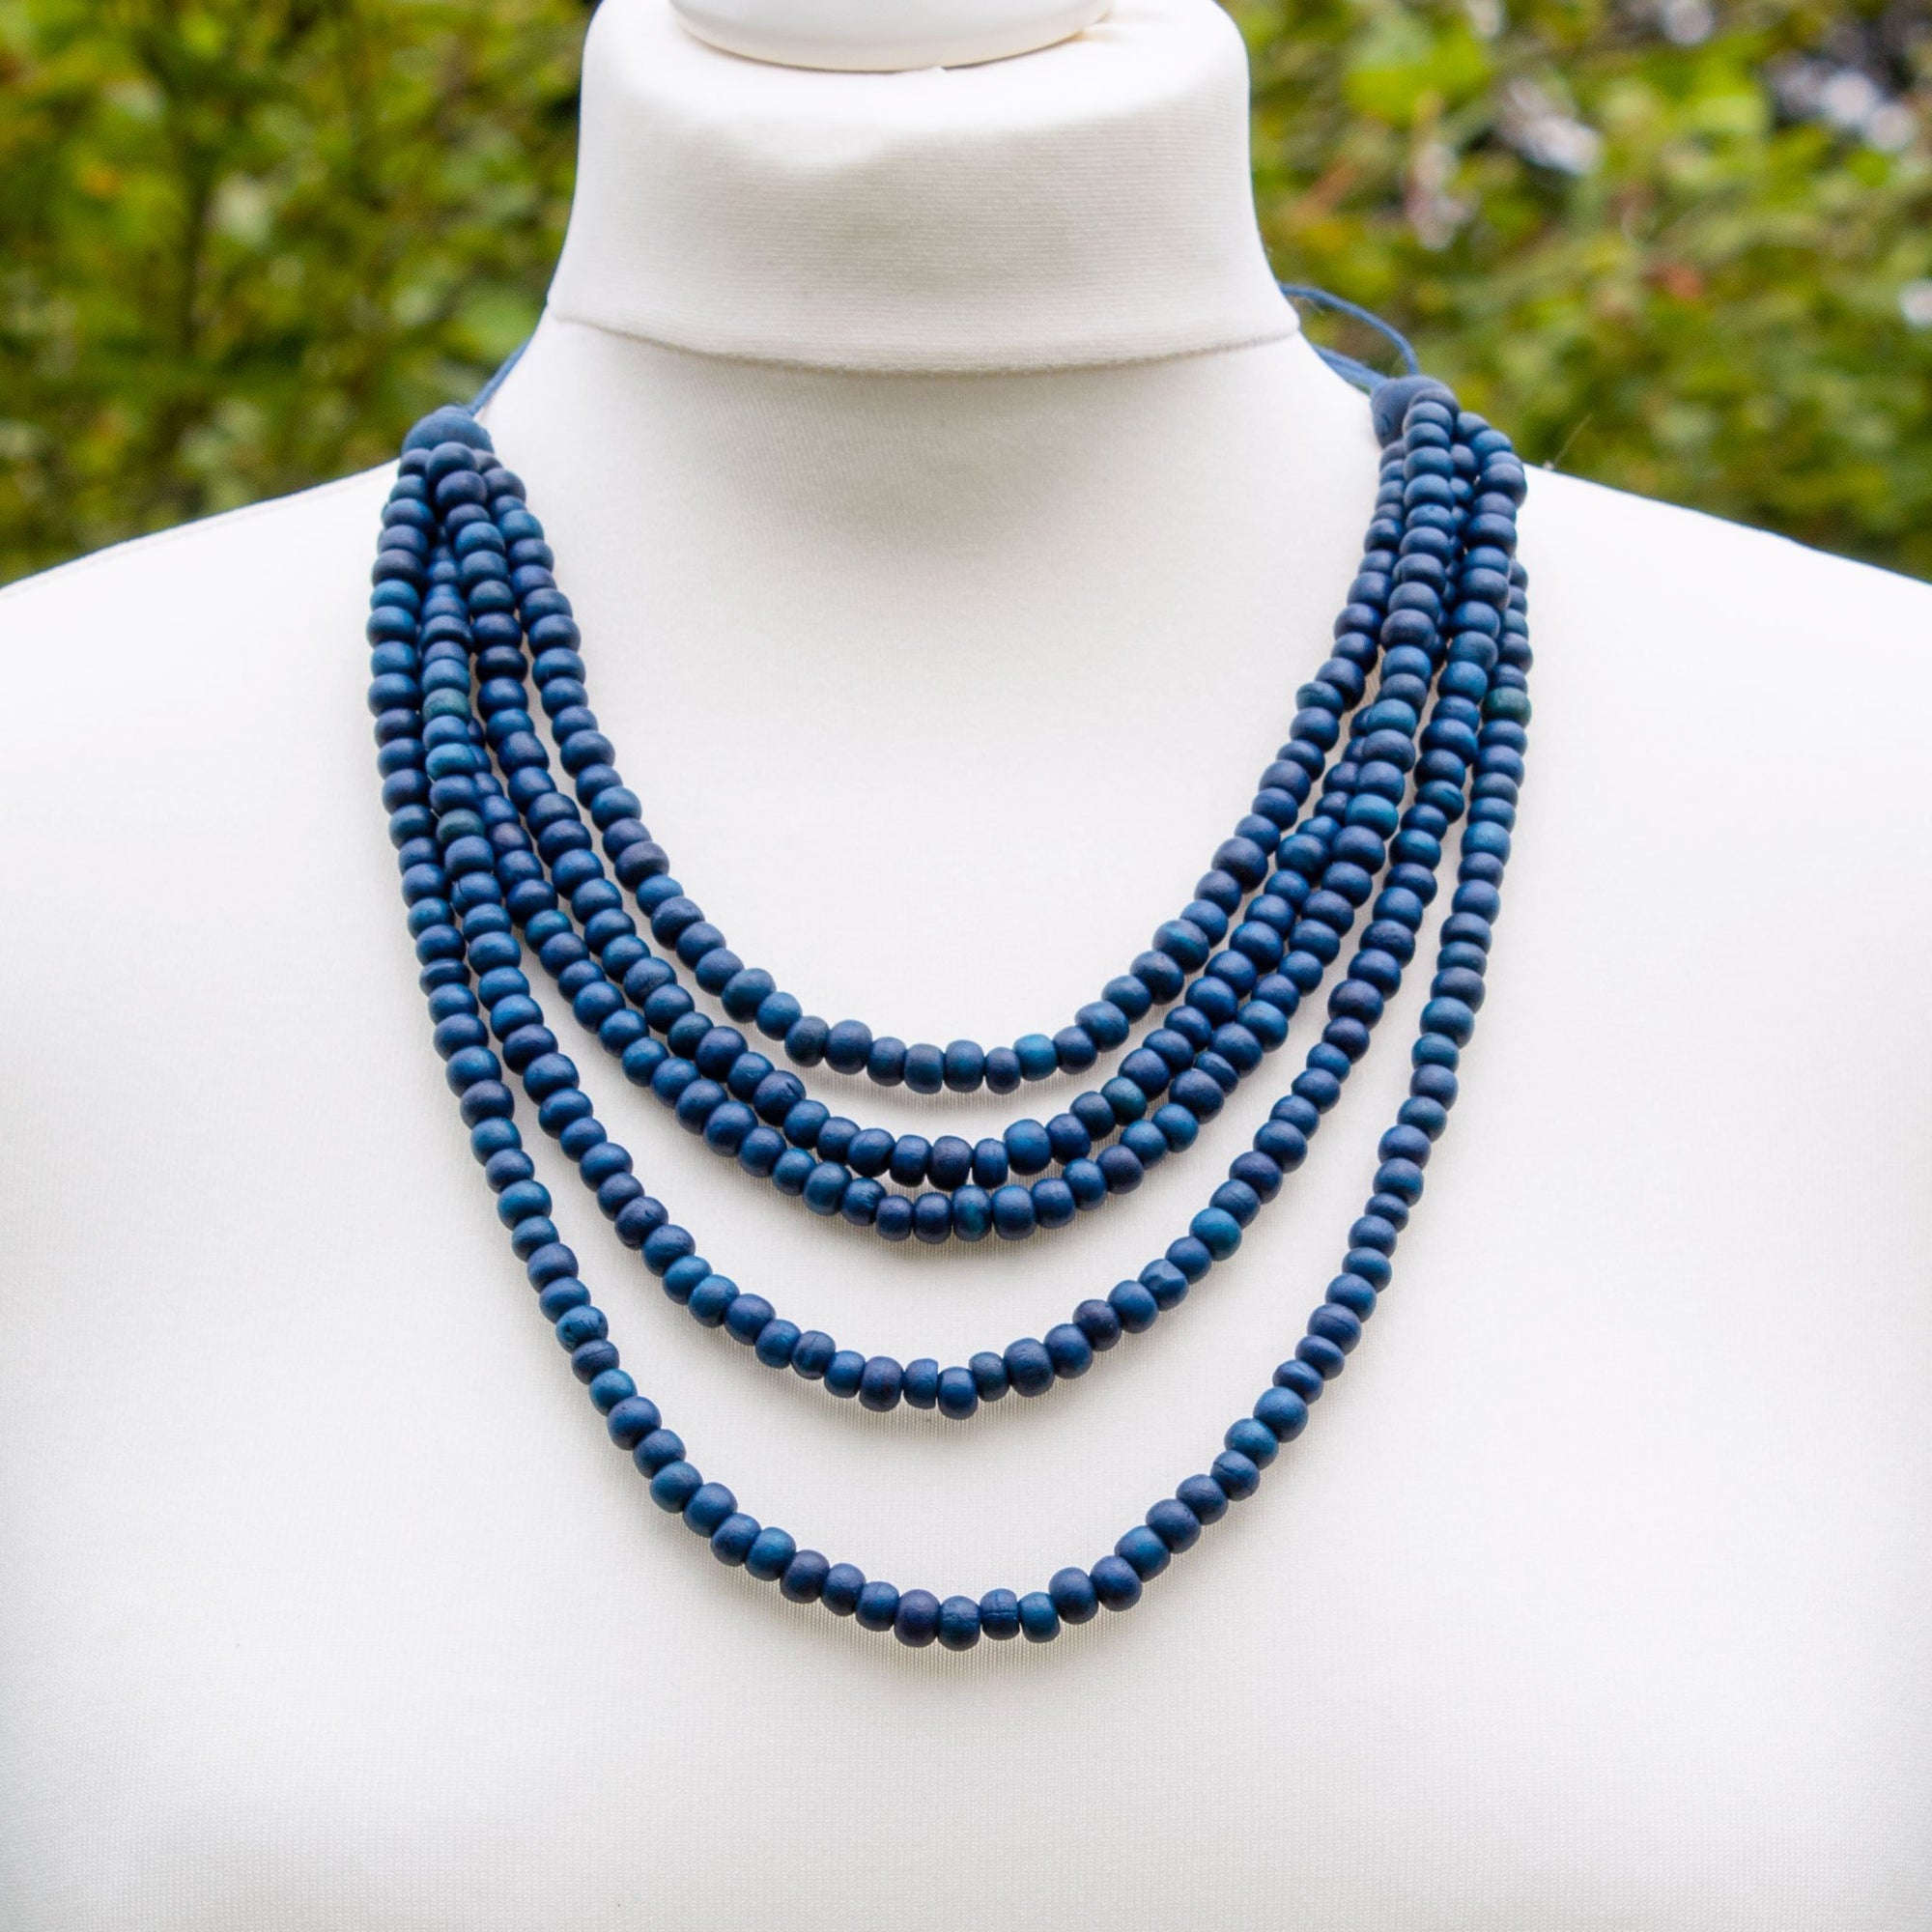 Dark Blue Multi Strand Wooden Bead Necklace | Necklace - The Naughty Shrew